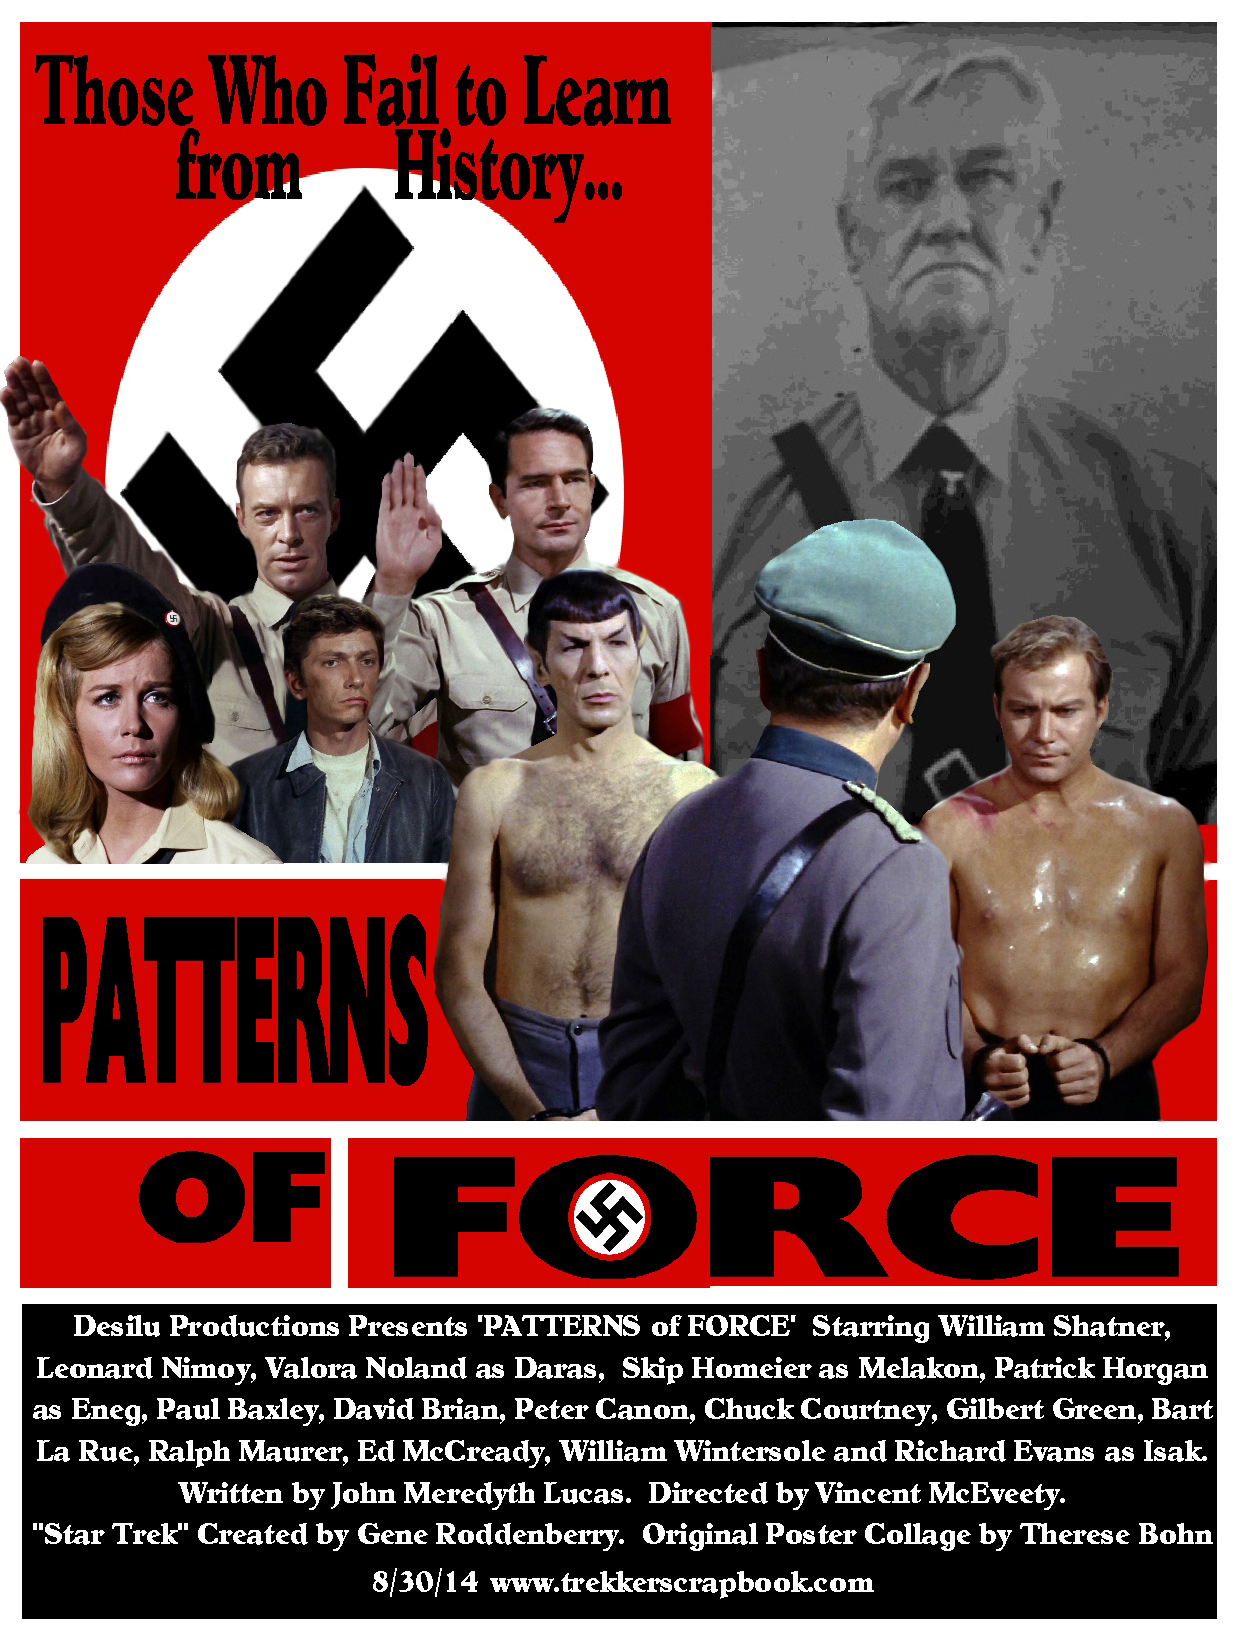 53 - Patterns of Force